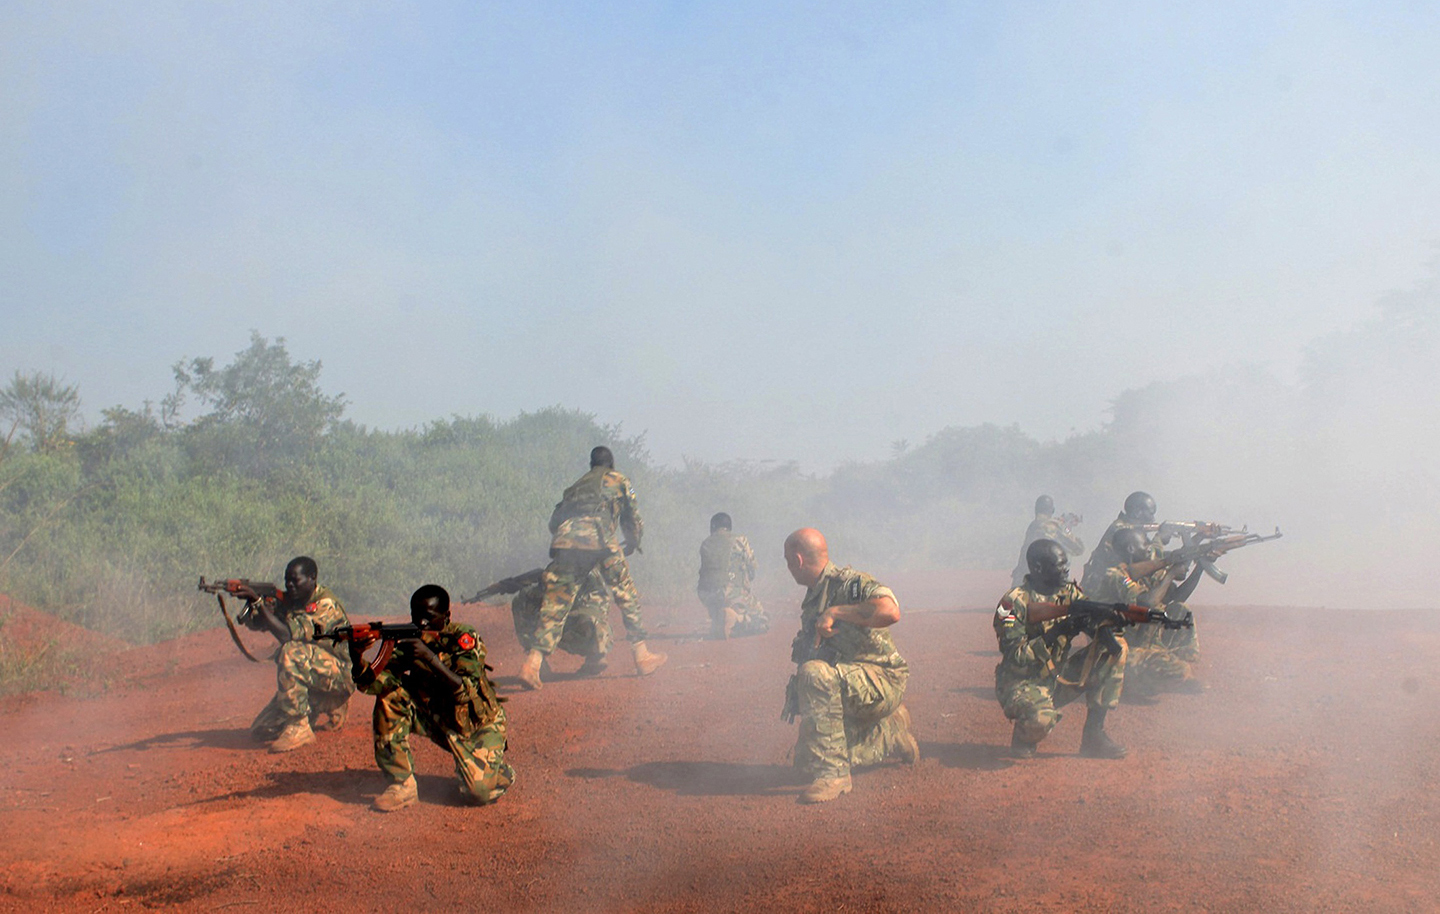 A U.S. Special Forces trainer supervises a military assault drill for a unit within the Sudan People's Liberation Army (SPLA) conducted in Nzara on the outskirts of Yambio November 29, 2013. REUTERS/Andreea Campeanu (SOUTH SUDAN - Tags: MILITARY) (Newscom TagID: rtrlsix165172.jpg) [Photo via Newscom]